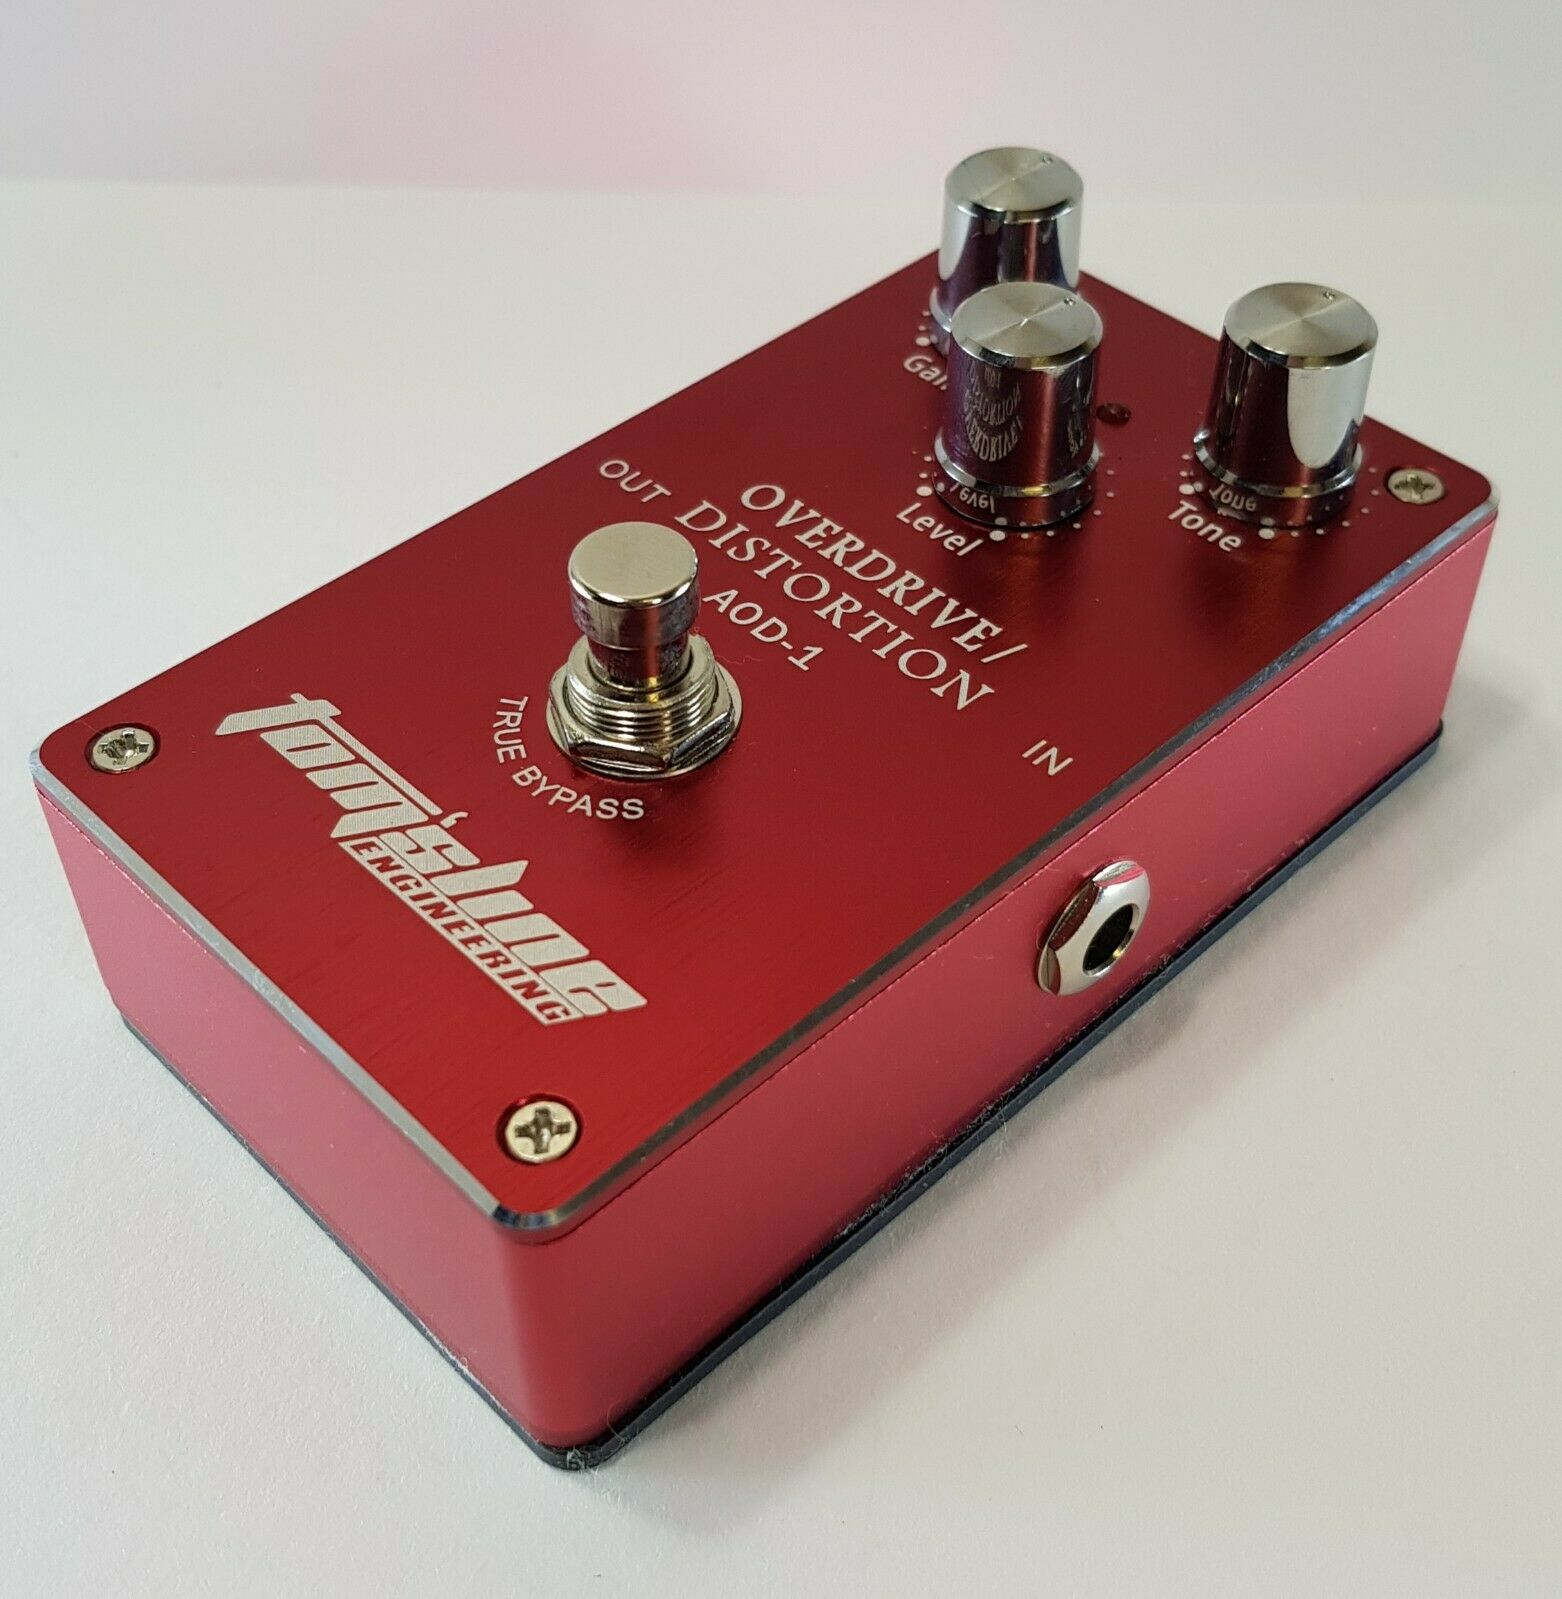 Brand New AOD-1 Overdrive and Distortion Guitar Effects Pedal. UK Stock. Boxed.